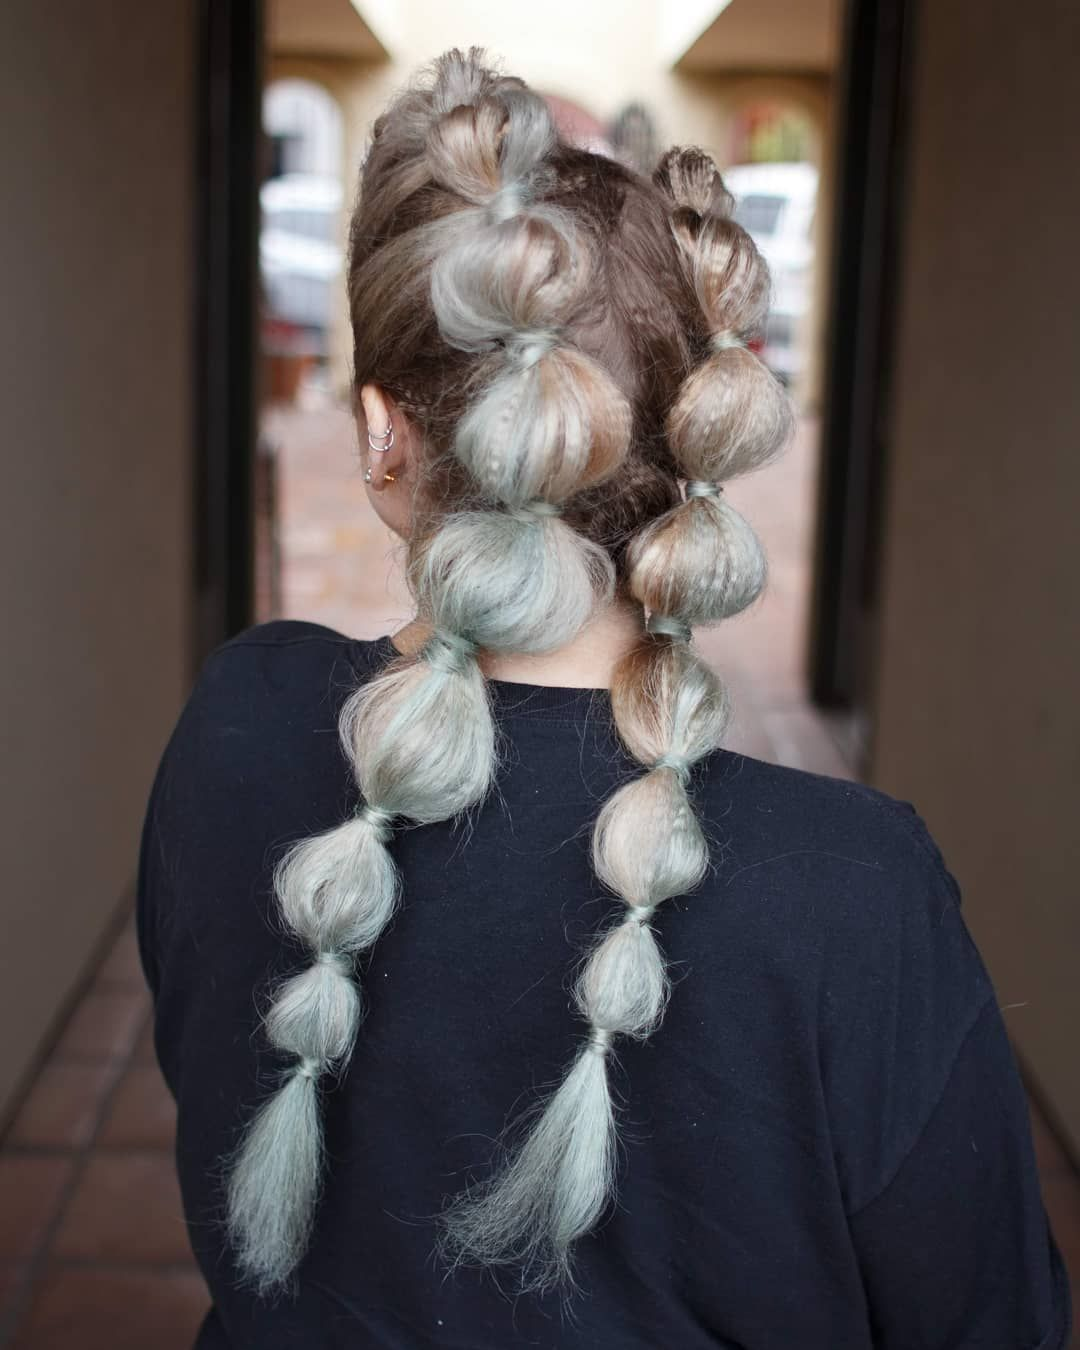 50 Festival Hair Ideas So You Can Whip Your Hair Back And Forth All Weekend Long Cute Up Hairstyles Festival Hair Festival Braid